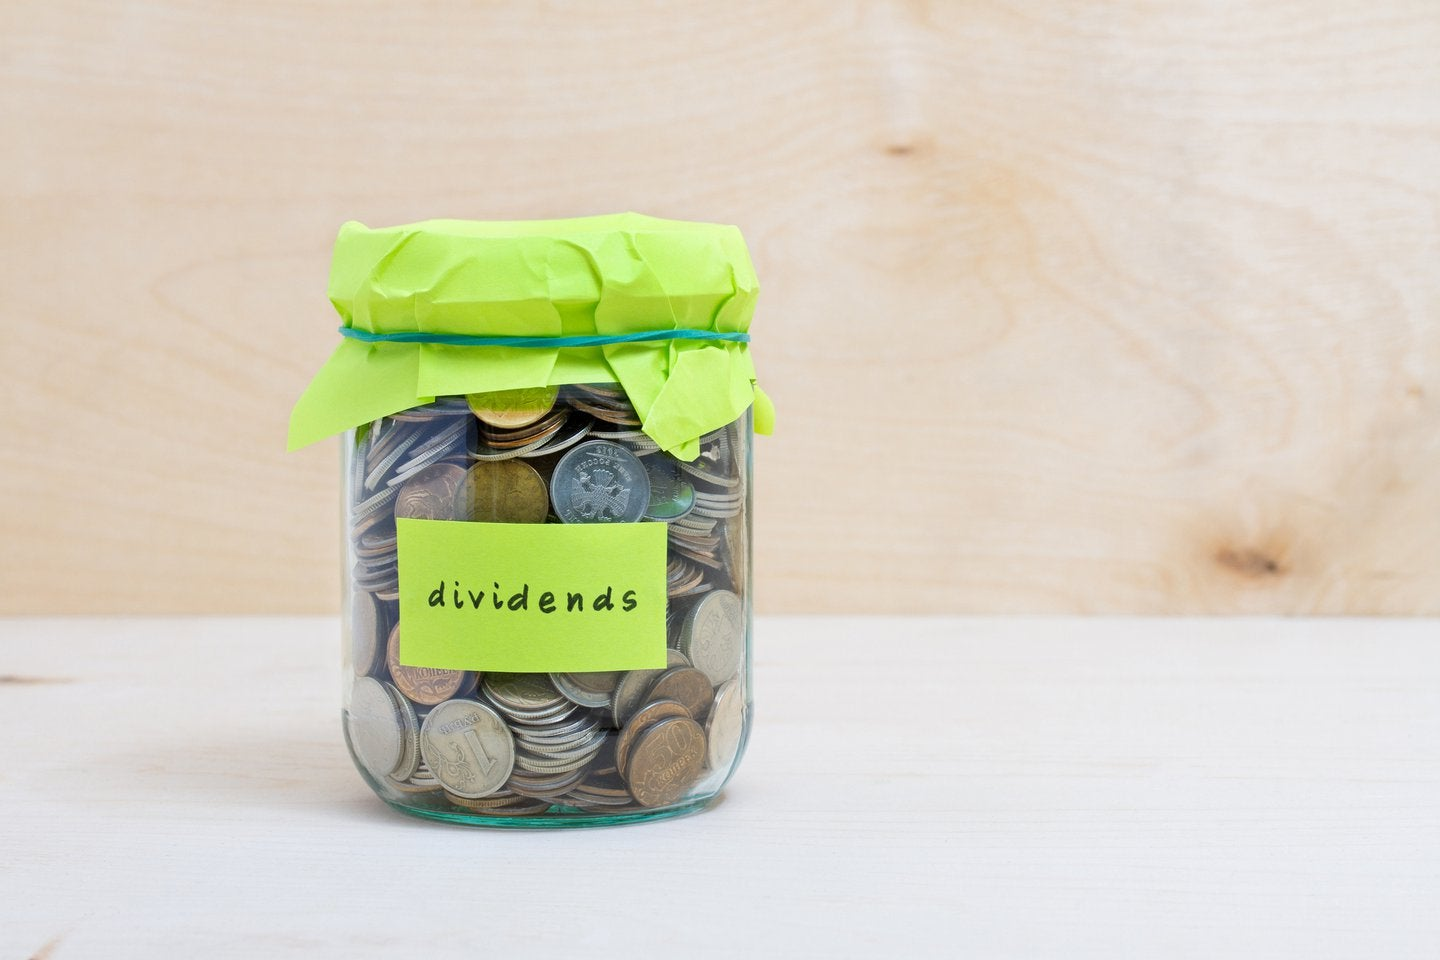 coin jar towards dividends